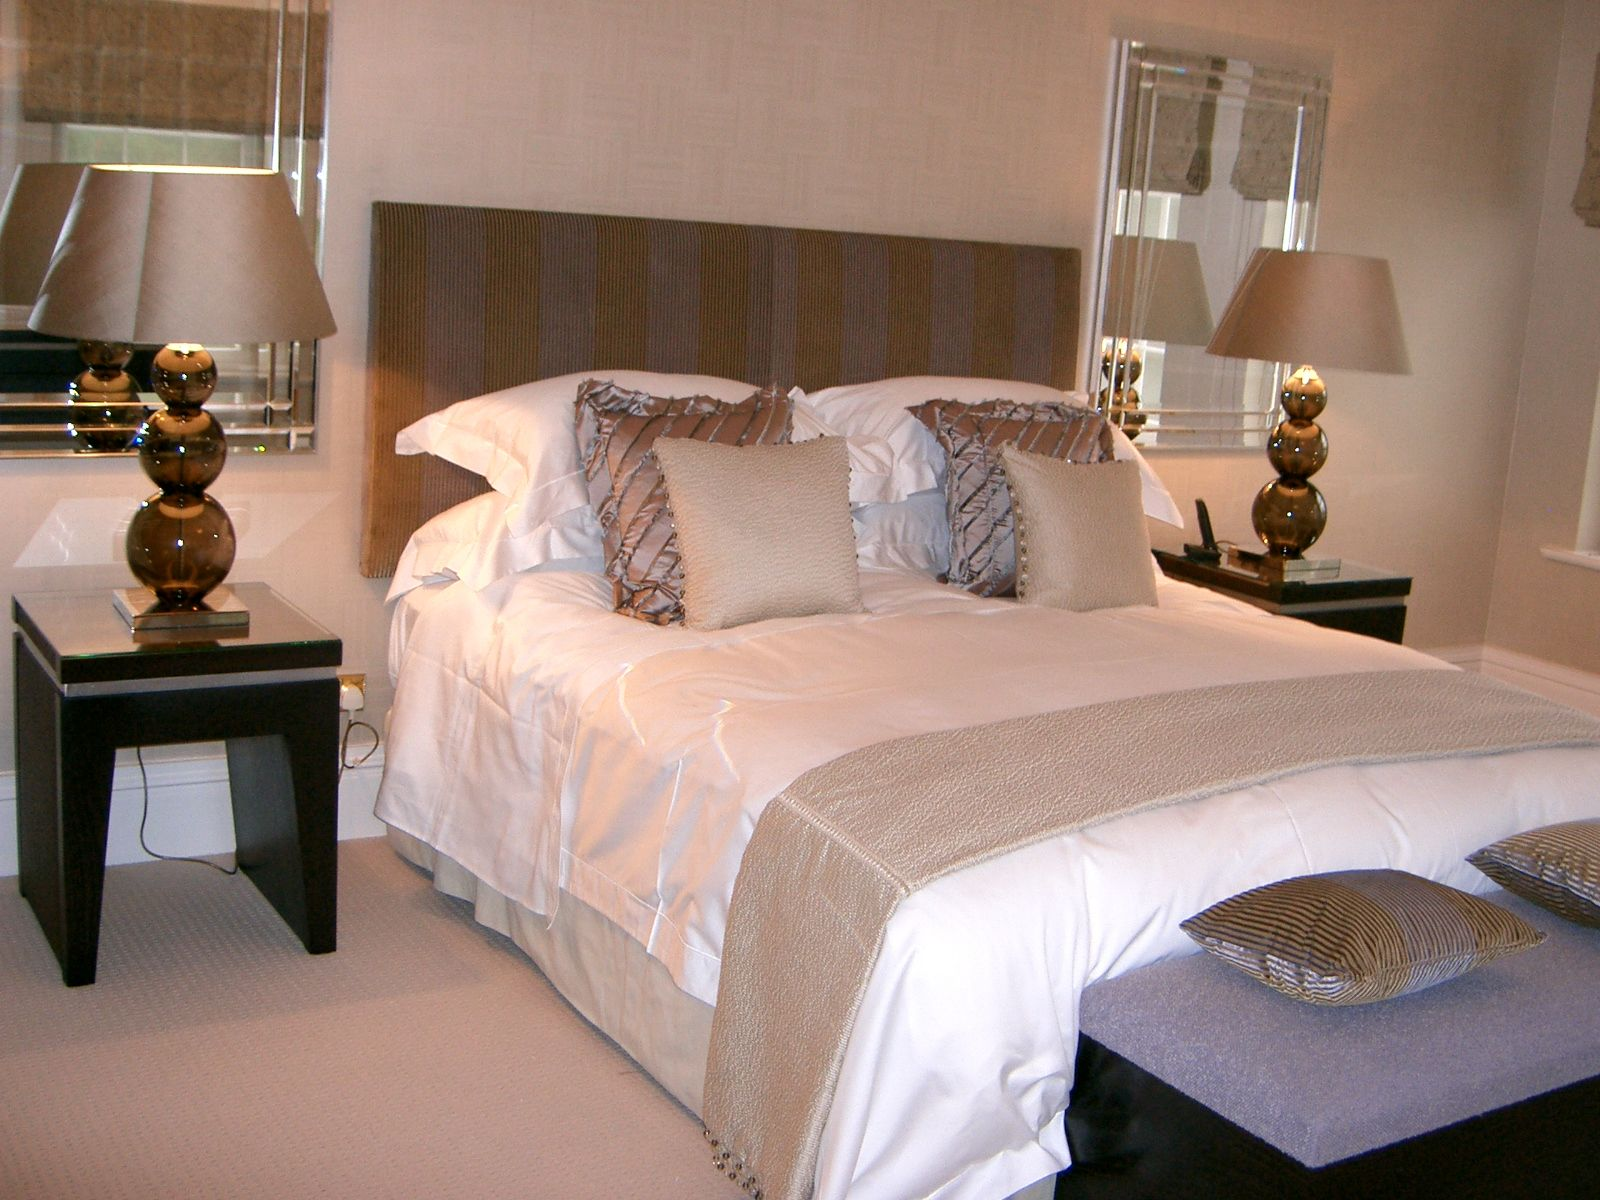 For many bedrooms are a place to relax so bright, even